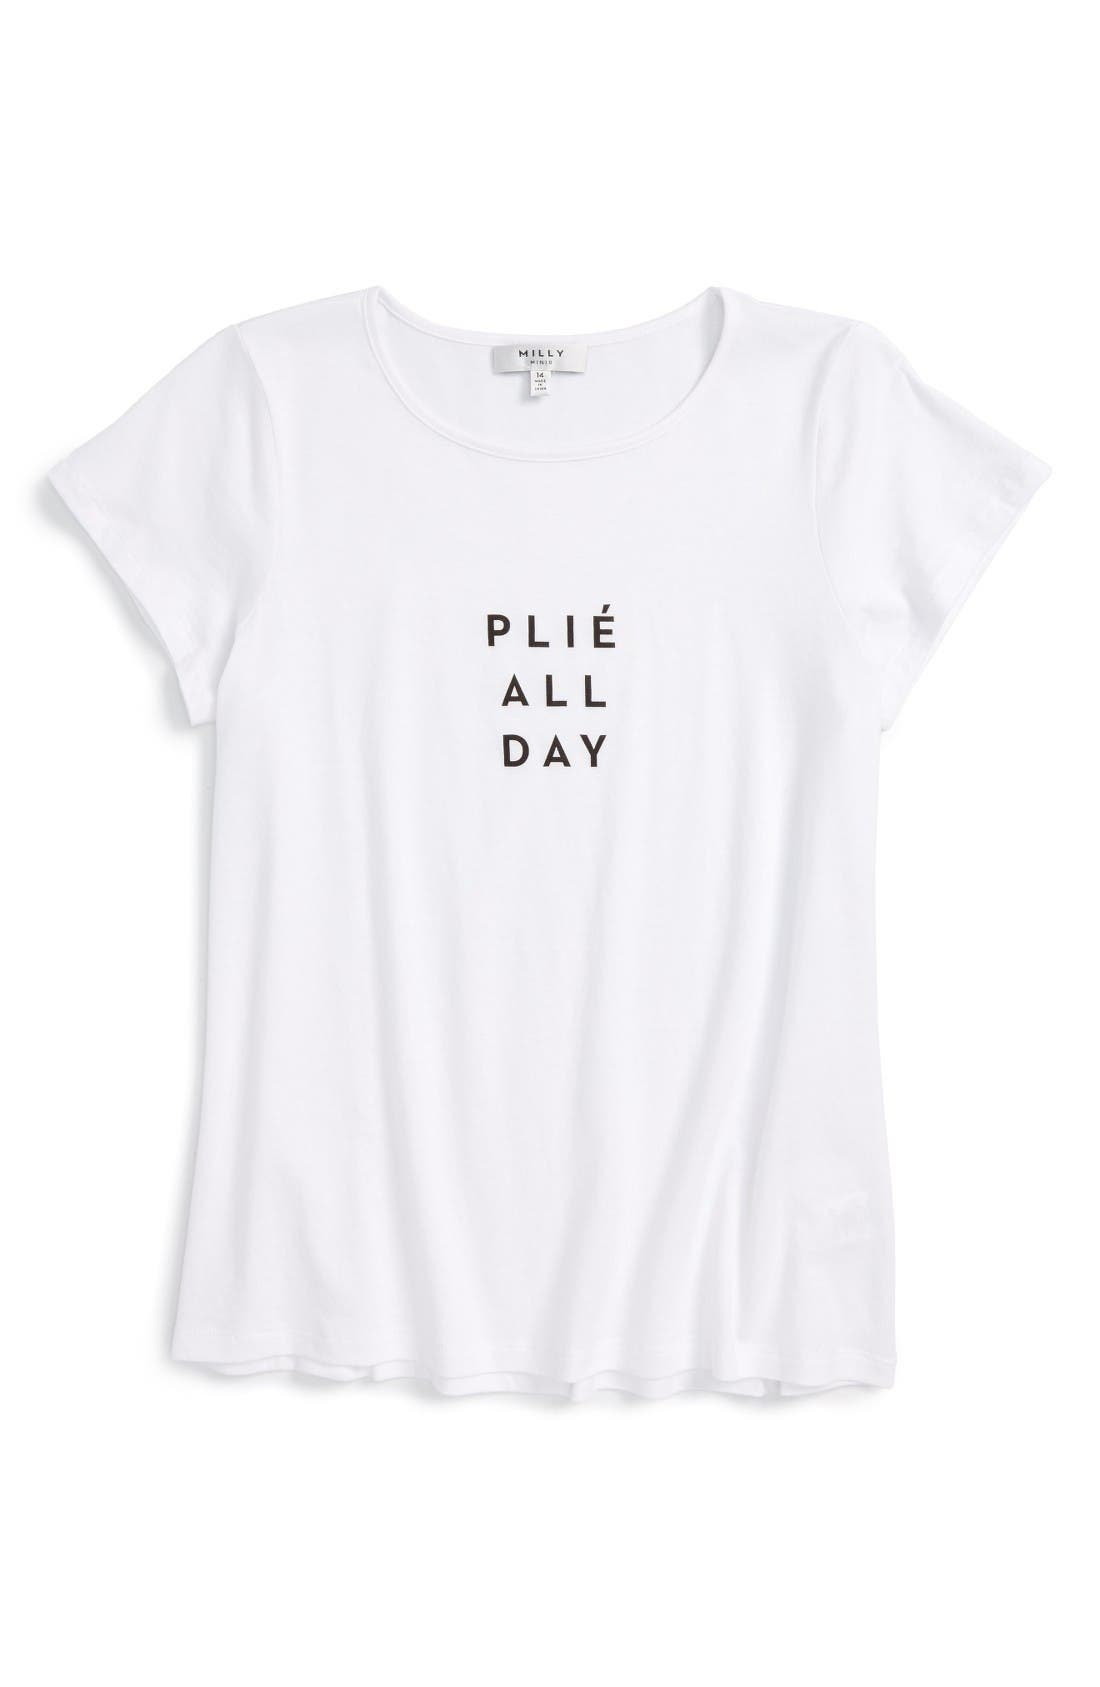 Milly Minis Plié All Day Graphic Tee (Toddler Girls, Little Girls & Big Girls)